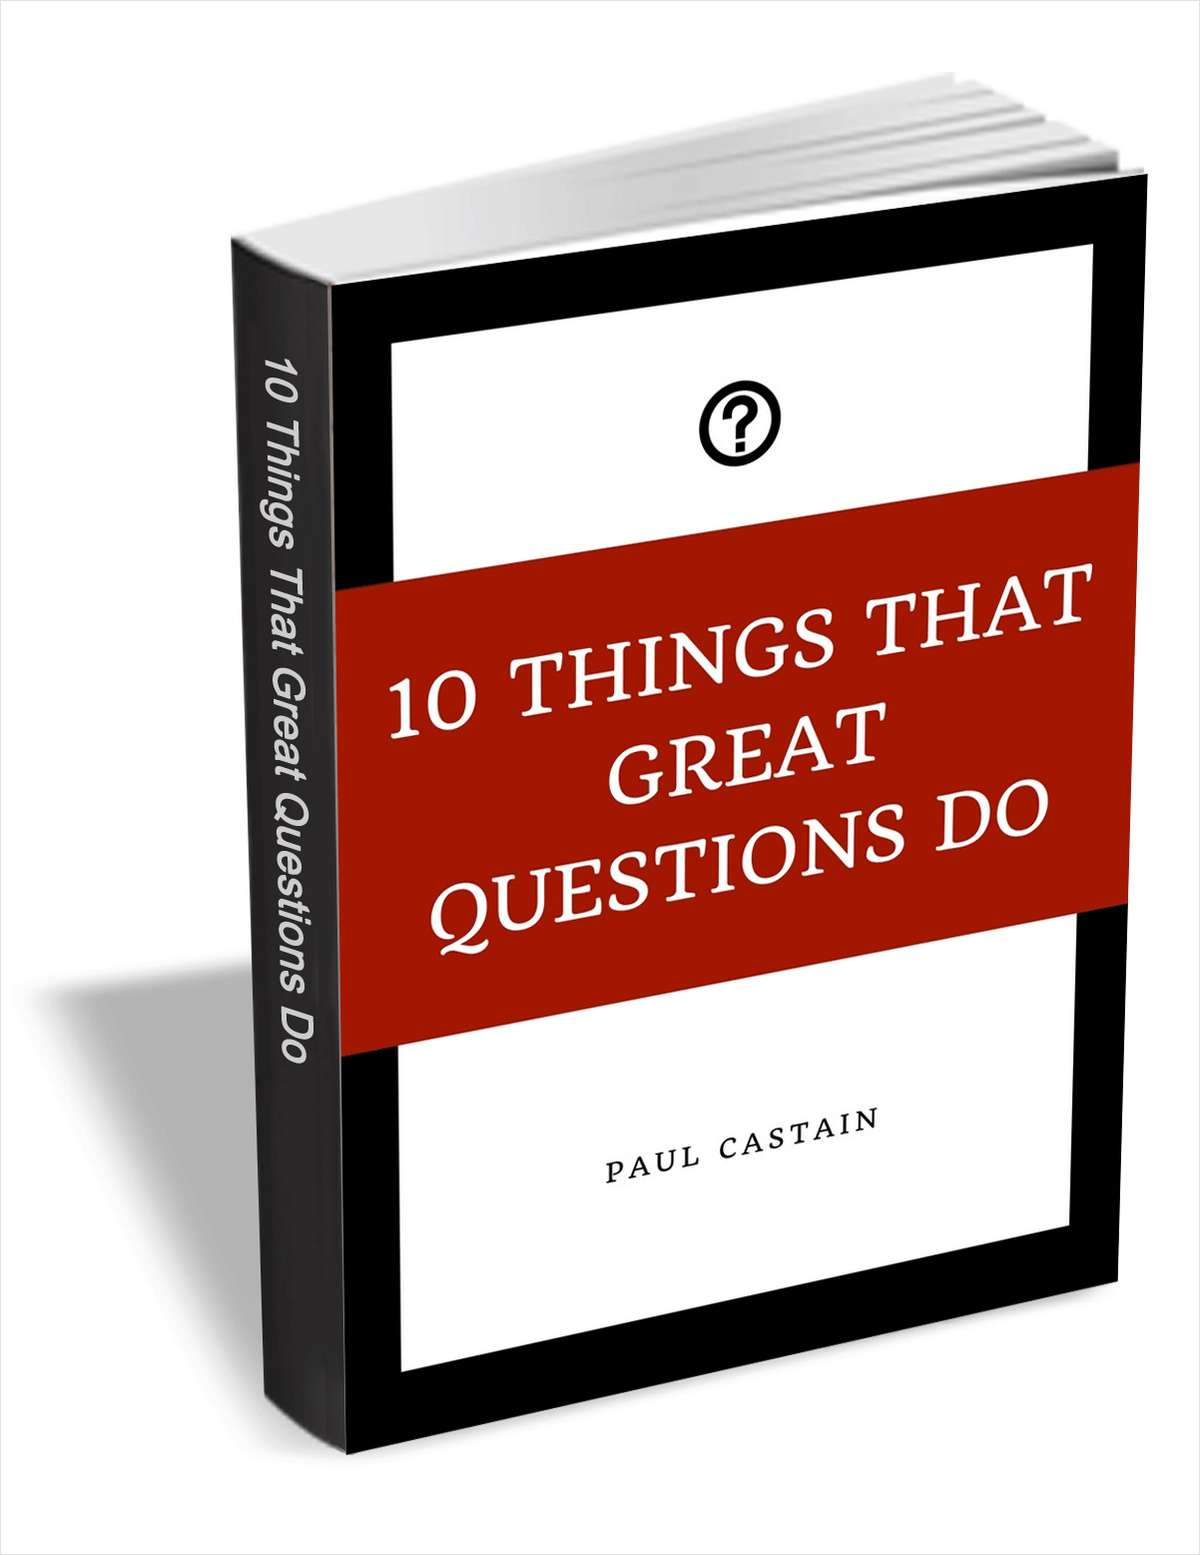 10 Things That Great Questions Do